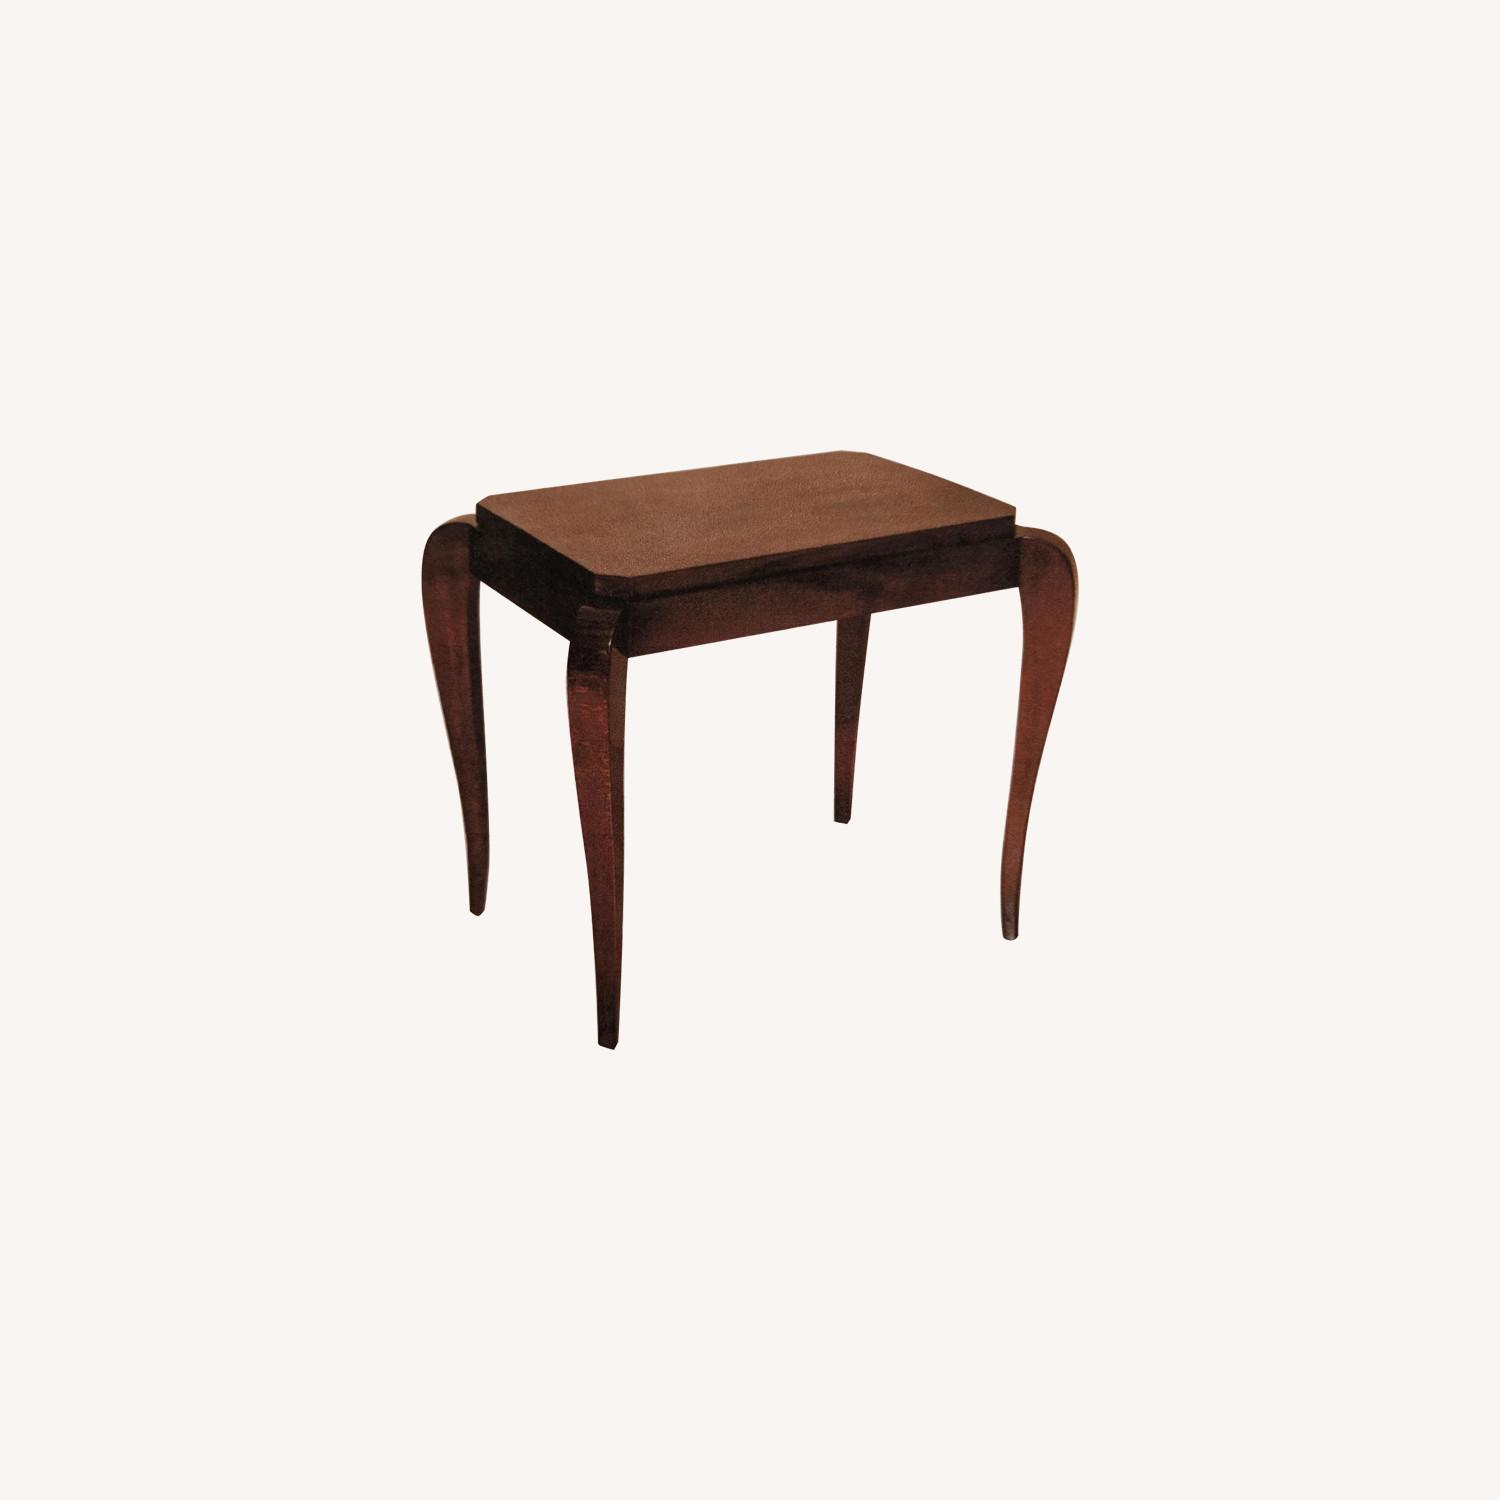 Gracious Art Deco Side Table w/ Tapered Legs - image-0